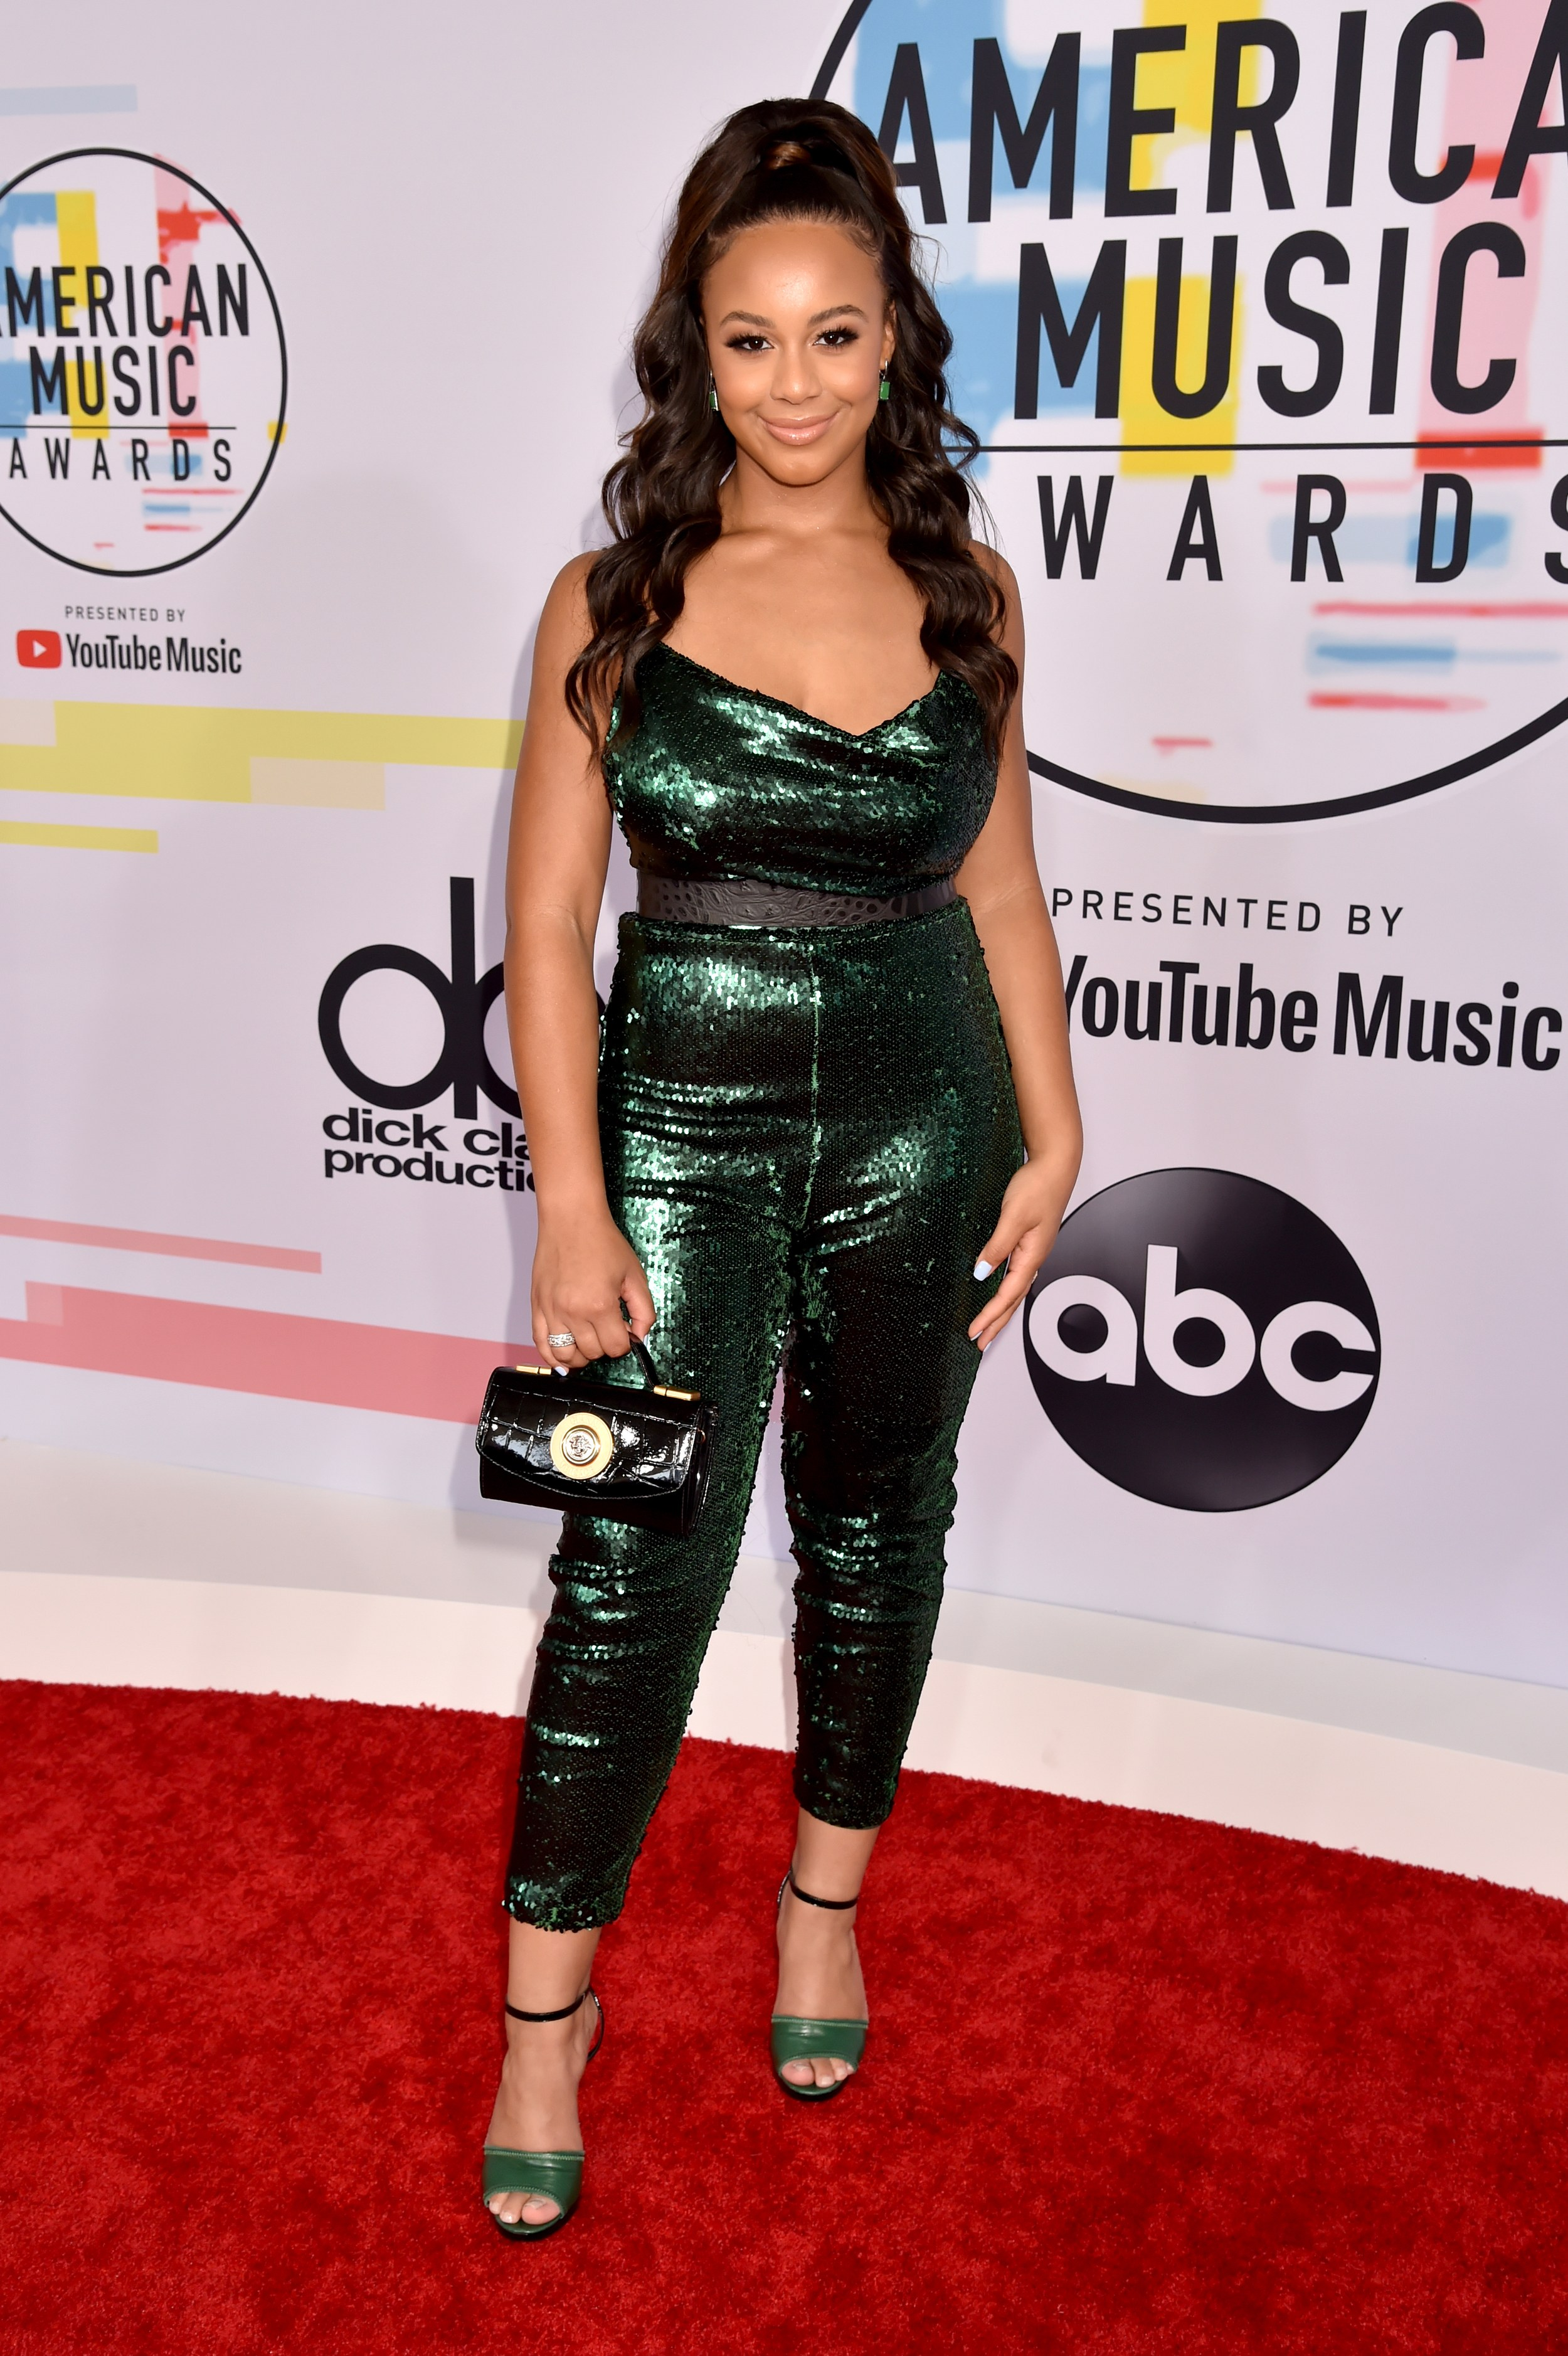 AMERICAN MUSIC AWARDS 2018 RED CARPET NIA SIOUX.jpg